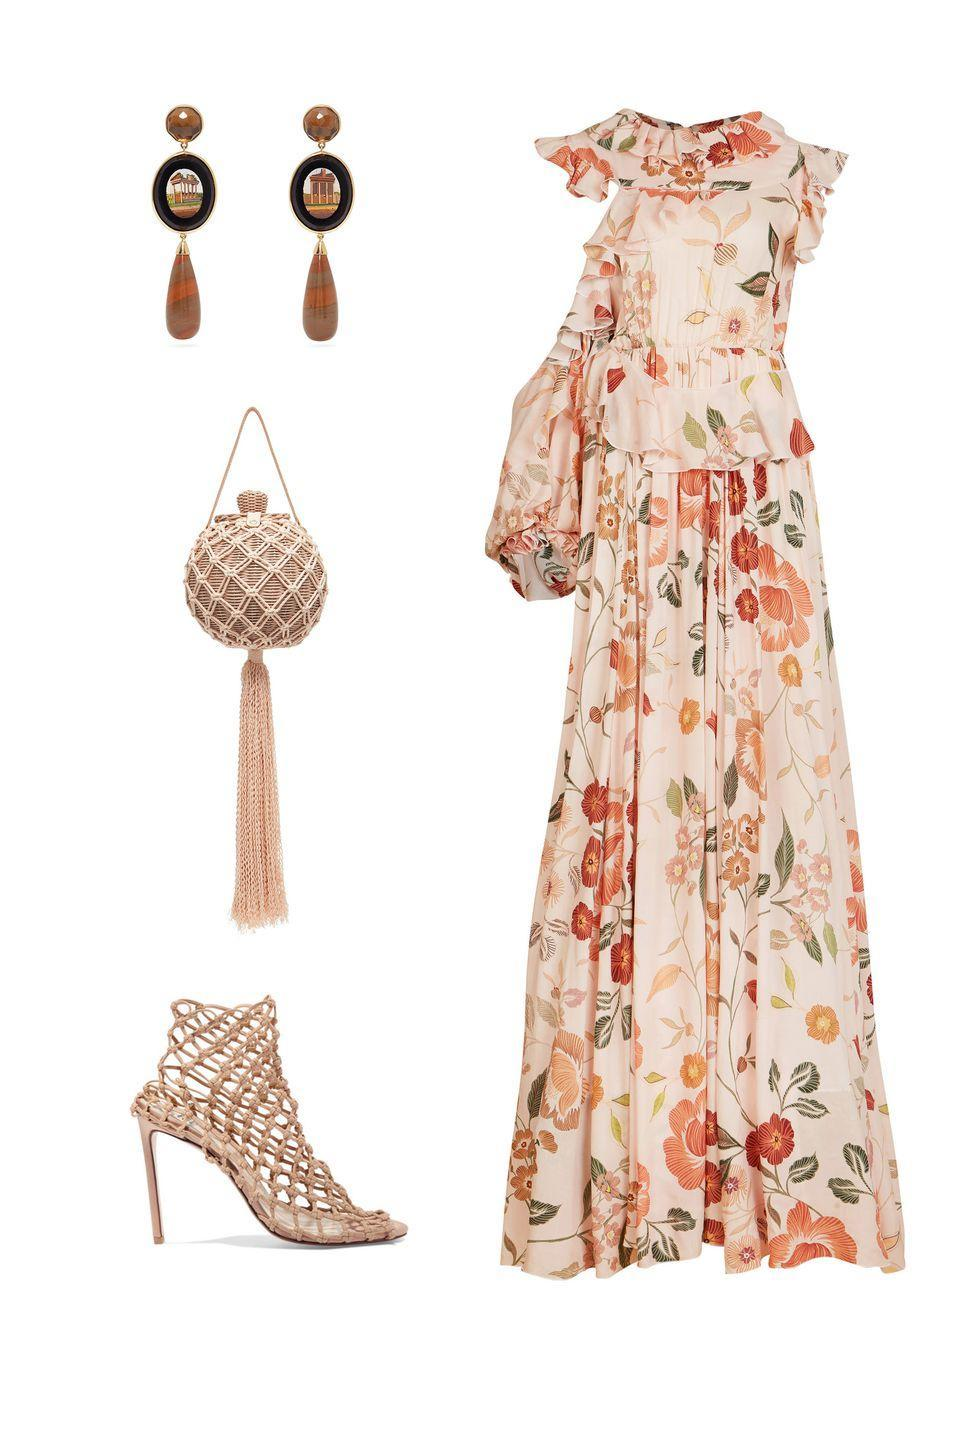 """<p>Bohemian florals, pastoral vibes and Victorian necklines have been au courant for some time now, and daring to take them to an edgier place in styling feels more in line with the rich feeling of fall.</p><p><em><strong>Lana Mueller</strong> gown, $905, <a rel=""""nofollow noopener"""" href=""""https://www.modaoperandi.com/lana-mueller-ss19/jua-frilled-maxi-dress"""" target=""""_blank"""" data-ylk=""""slk:modaoperandi.com"""" class=""""link rapid-noclick-resp"""">modaoperandi.com</a>; <strong>Ulla Johnson</strong> bag, $425, <a rel=""""nofollow noopener"""" href=""""https://www.modaoperandi.com/ulla-johnson-pf18/leia-bag?size=OS&mid=37385&utm_medium=Linkshare&utm_source=6Km1lFswsiY&utm_content=6Km1lFswsiY&siteID=6Km1lFswsiY-XCrkO72MxzJwxDi8D05TGQ&utm_campaign=US_Affiliates&utm_content=%3CLSNLNKTYPE%3E"""" target=""""_blank"""" data-ylk=""""slk:shopBAZAAR.com"""" class=""""link rapid-noclick-resp"""">shopBAZAAR.com</a>; <strong>Brigid Blanco</strong> earrings, $8,565, <a rel=""""nofollow noopener"""" href=""""https://www.matchesfashion.com/us/products/Brigid-Blanco-Mosaic-quartz-%26-18kt-gold-earrings-1239584"""" target=""""_blank"""" data-ylk=""""slk:matchesfashion.com"""" class=""""link rapid-noclick-resp"""">matchesfashion.com</a>; <strong>Francesco Russo</strong> sock boots, $990, <a rel=""""nofollow noopener"""" href=""""https://www.net-a-porter.com/us/en/product/1071616/francesco_russo/stretch-crochet-sock-boots"""" target=""""_blank"""" data-ylk=""""slk:netaporter.com"""" class=""""link rapid-noclick-resp"""">netaporter.com</a>.</em></p>"""